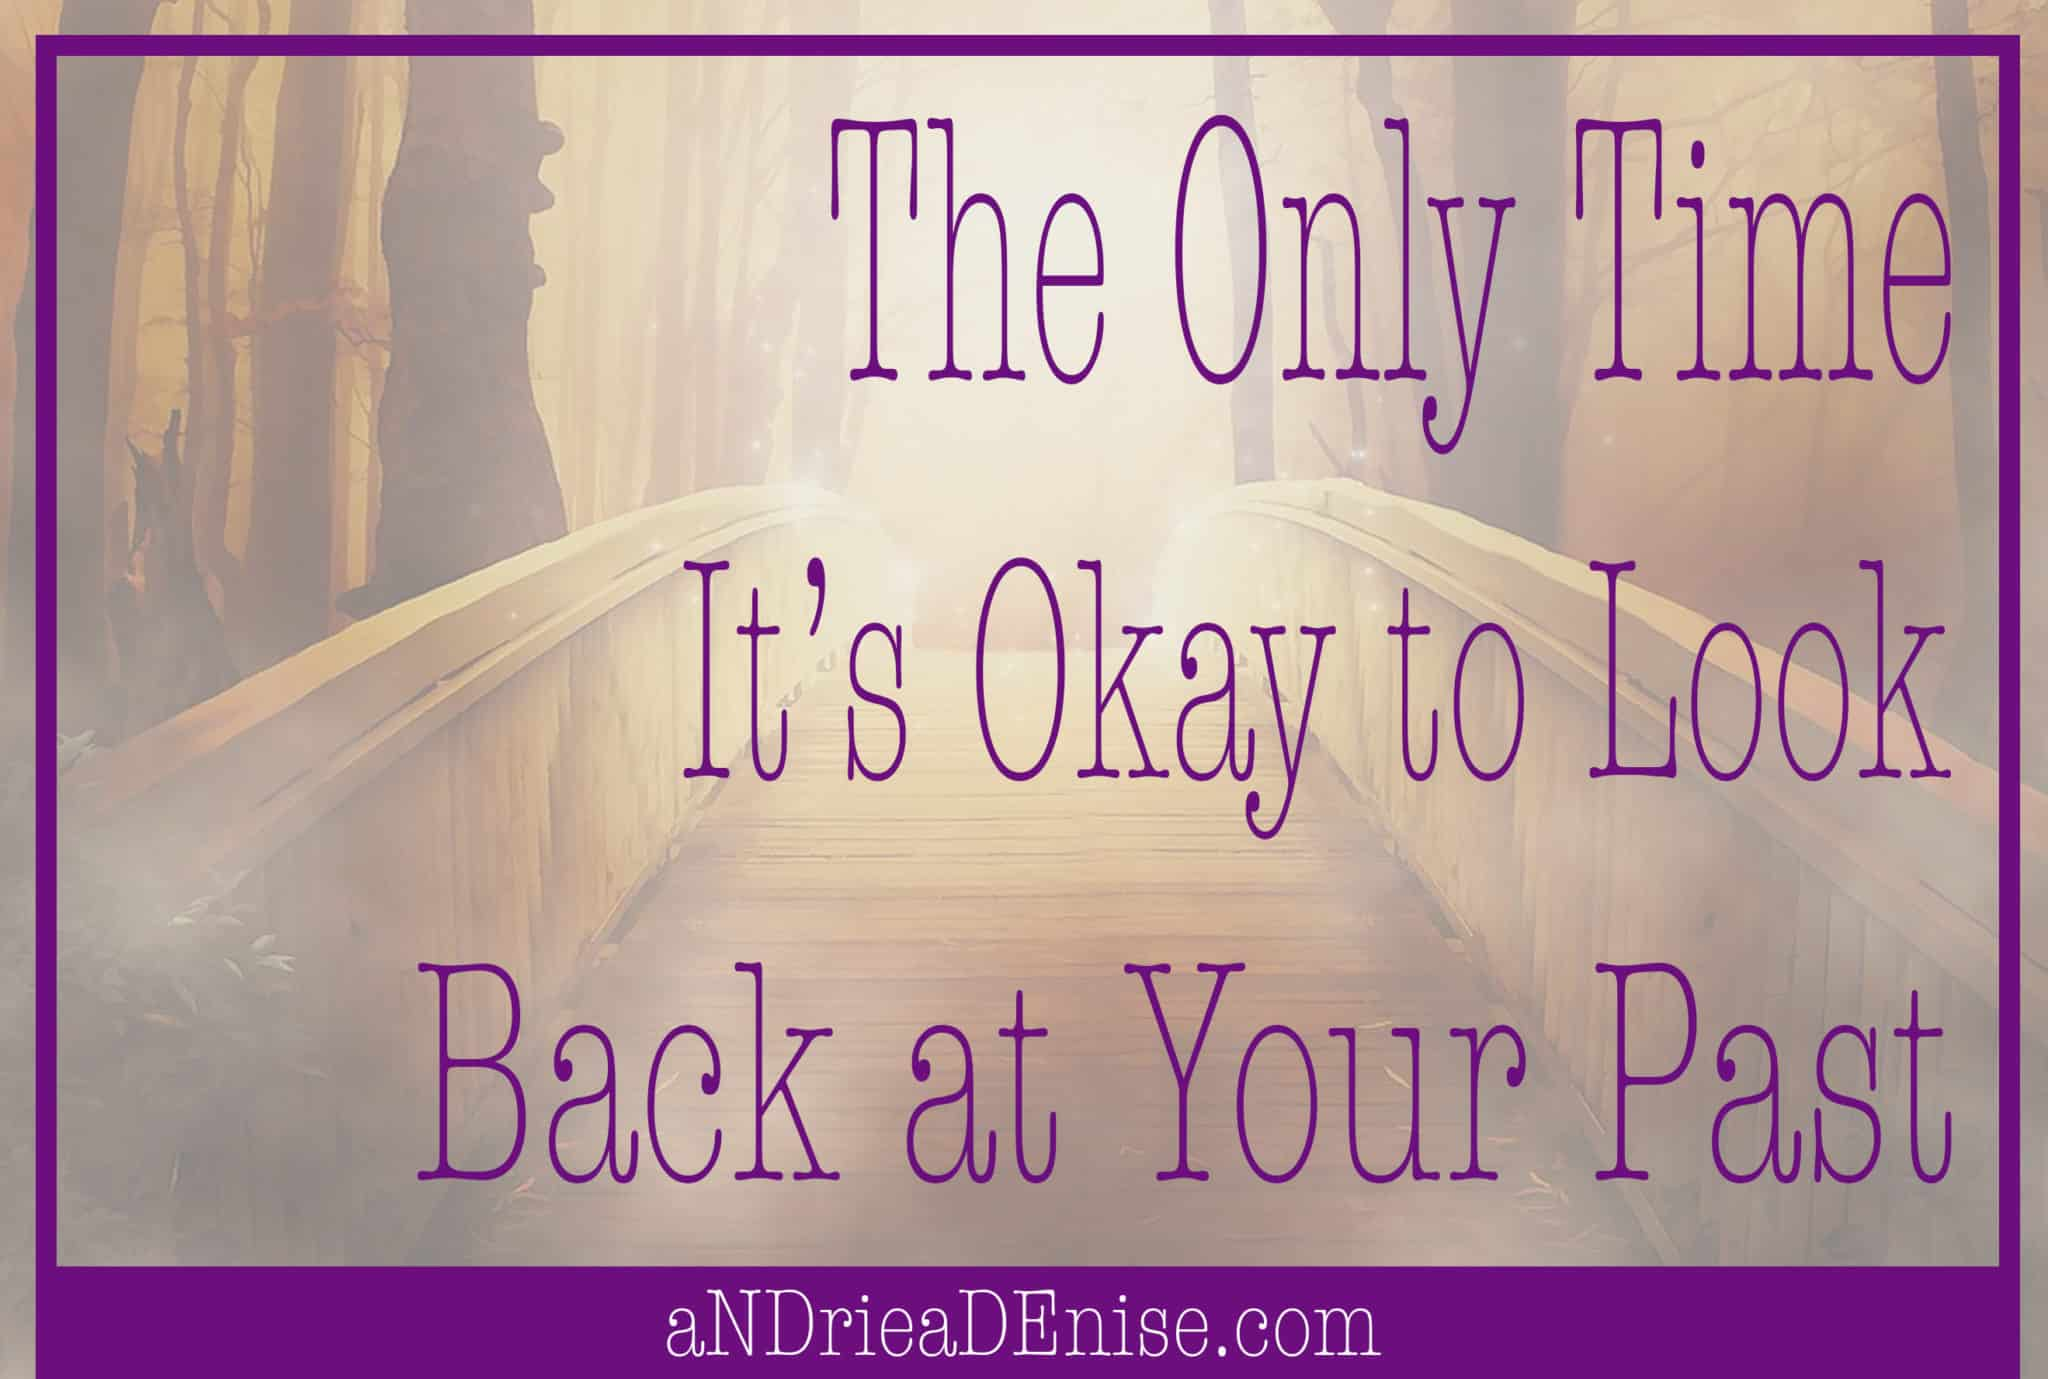 The Only Time It's Okay to Look Back at Your Past